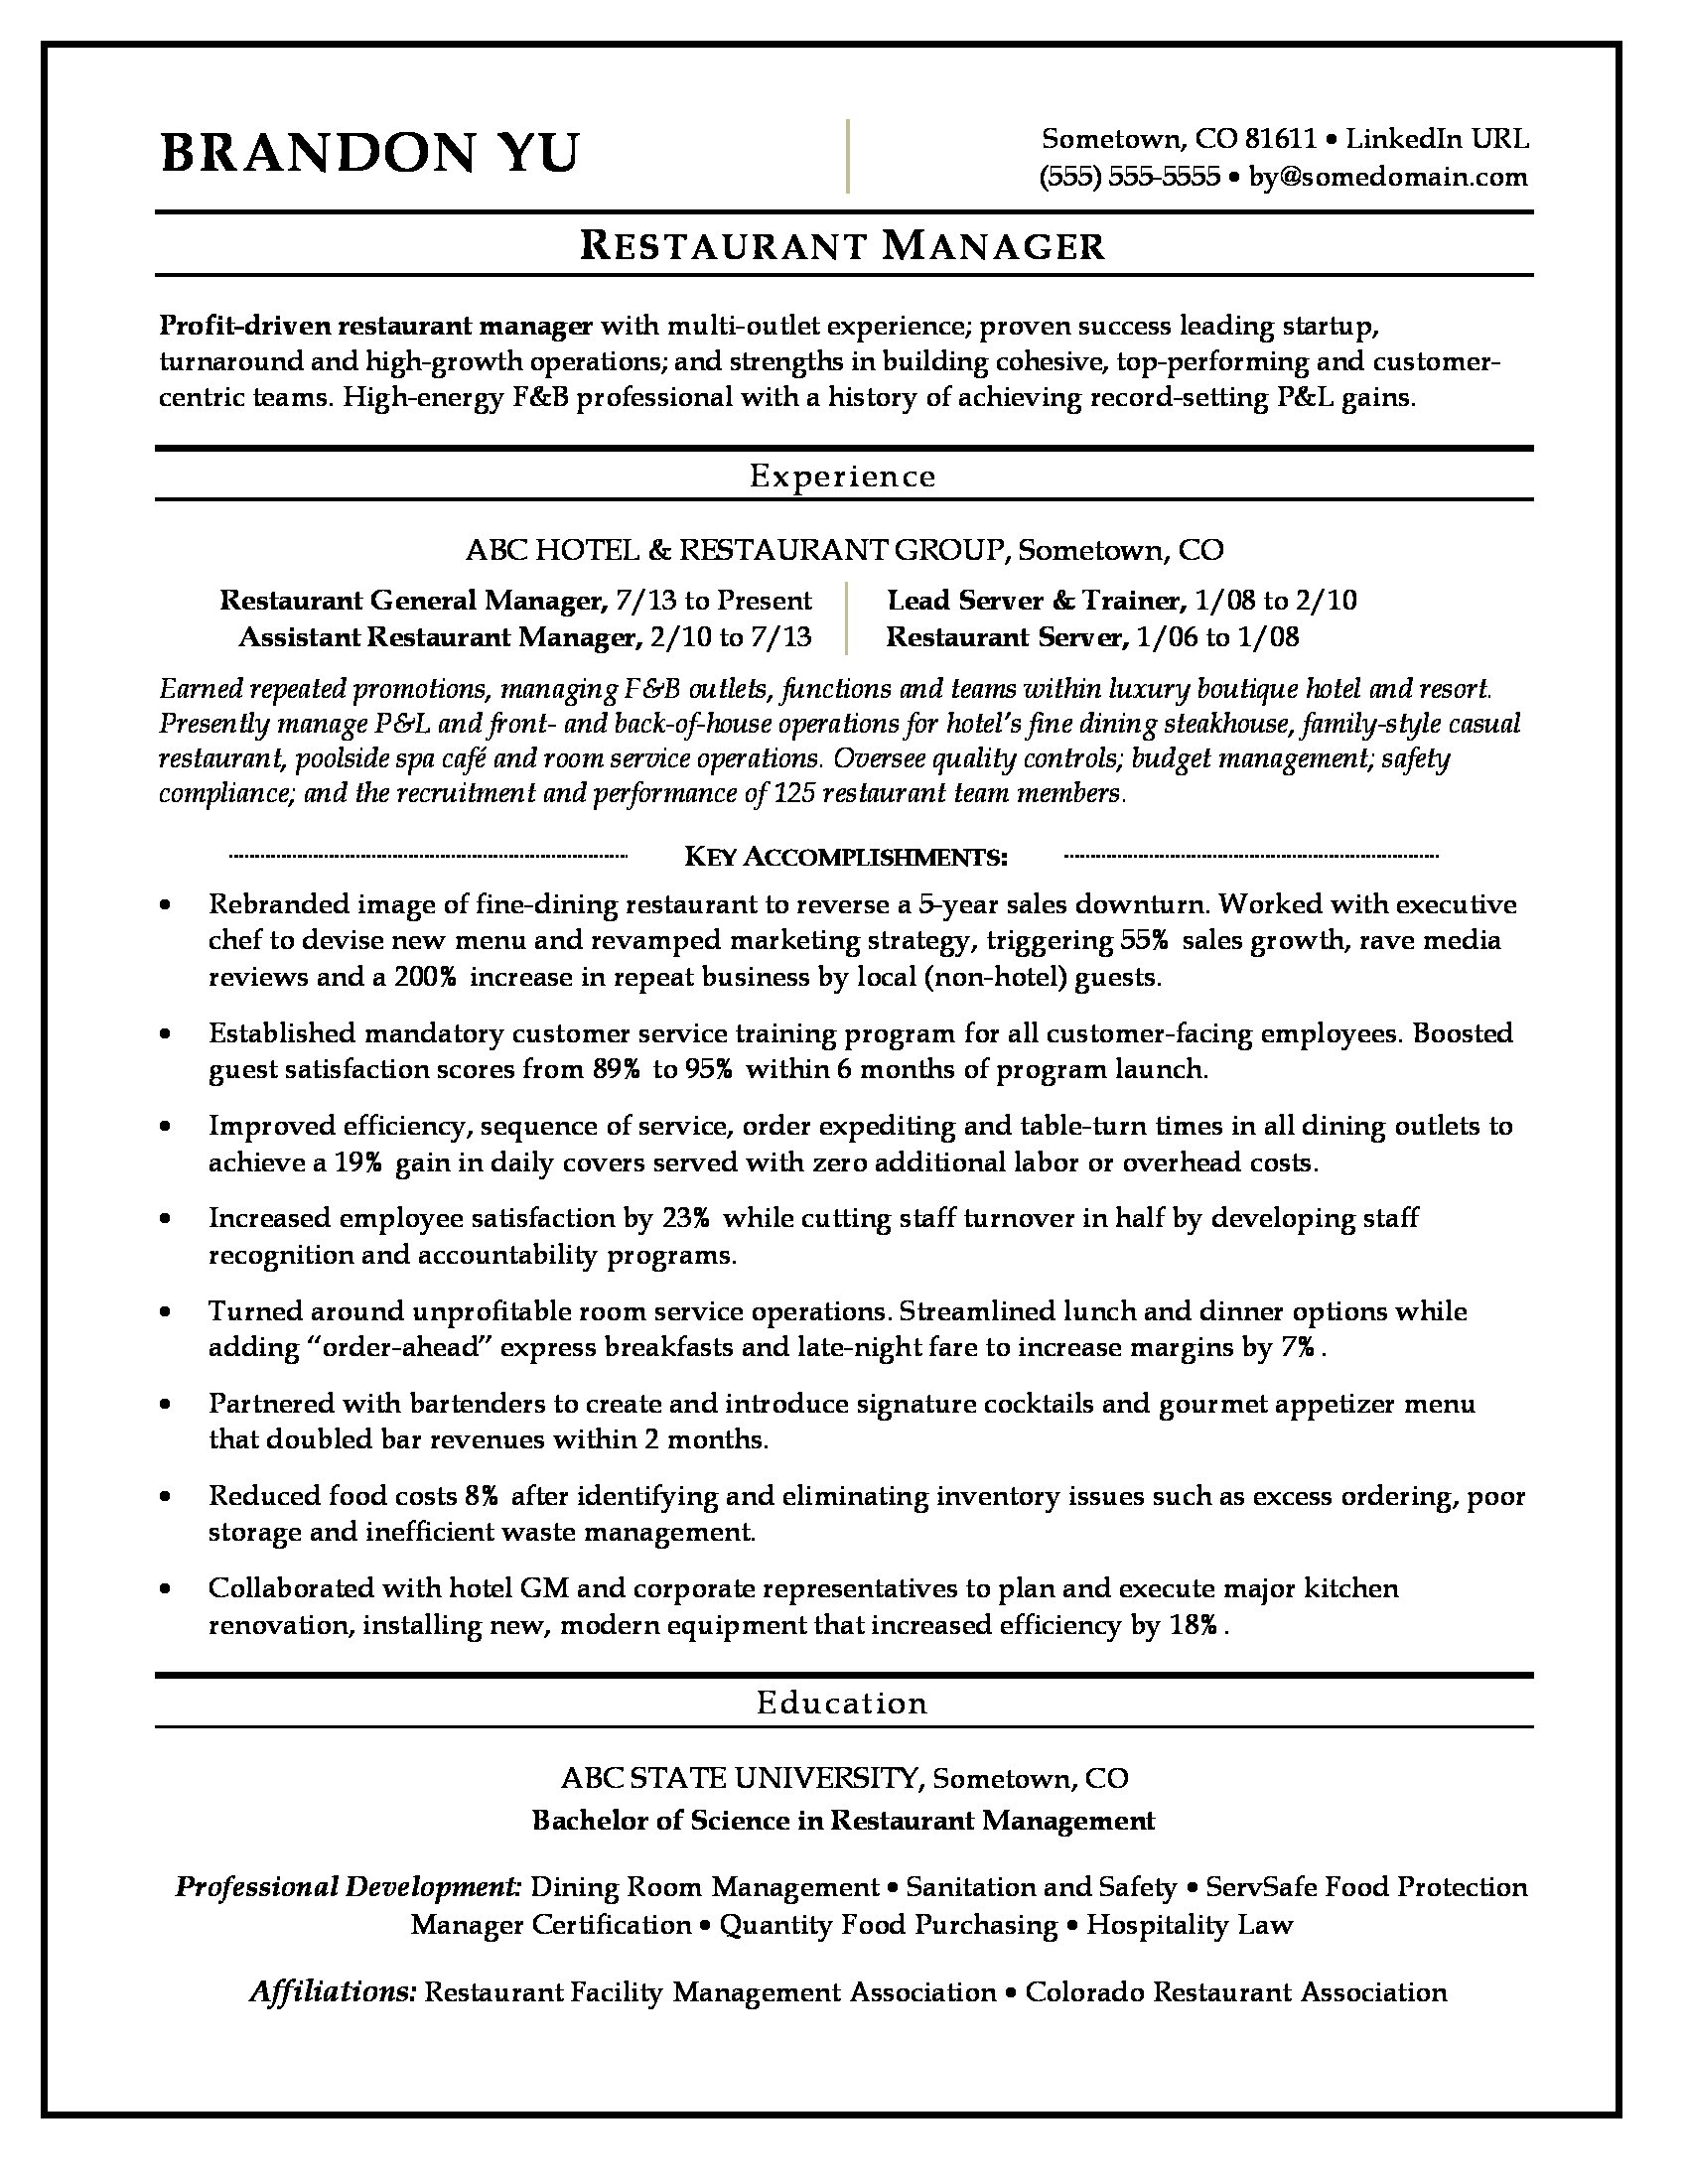 Restaurant manager resume sample monster sample resume for a restaurant manager thecheapjerseys Images